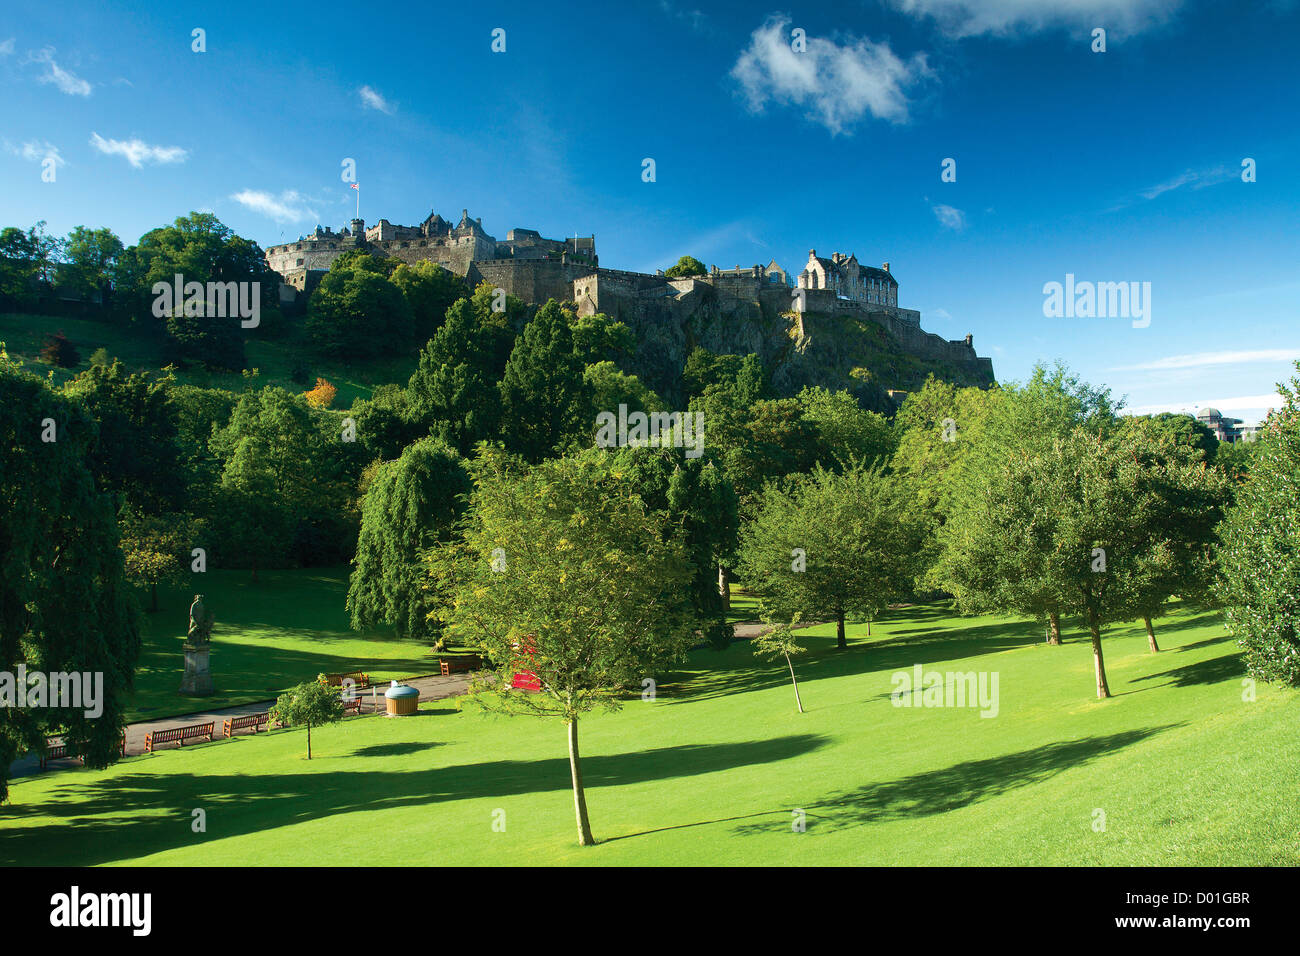 Edinburgh Castle from Princes Street Gardens, Edinburgh - Stock Image